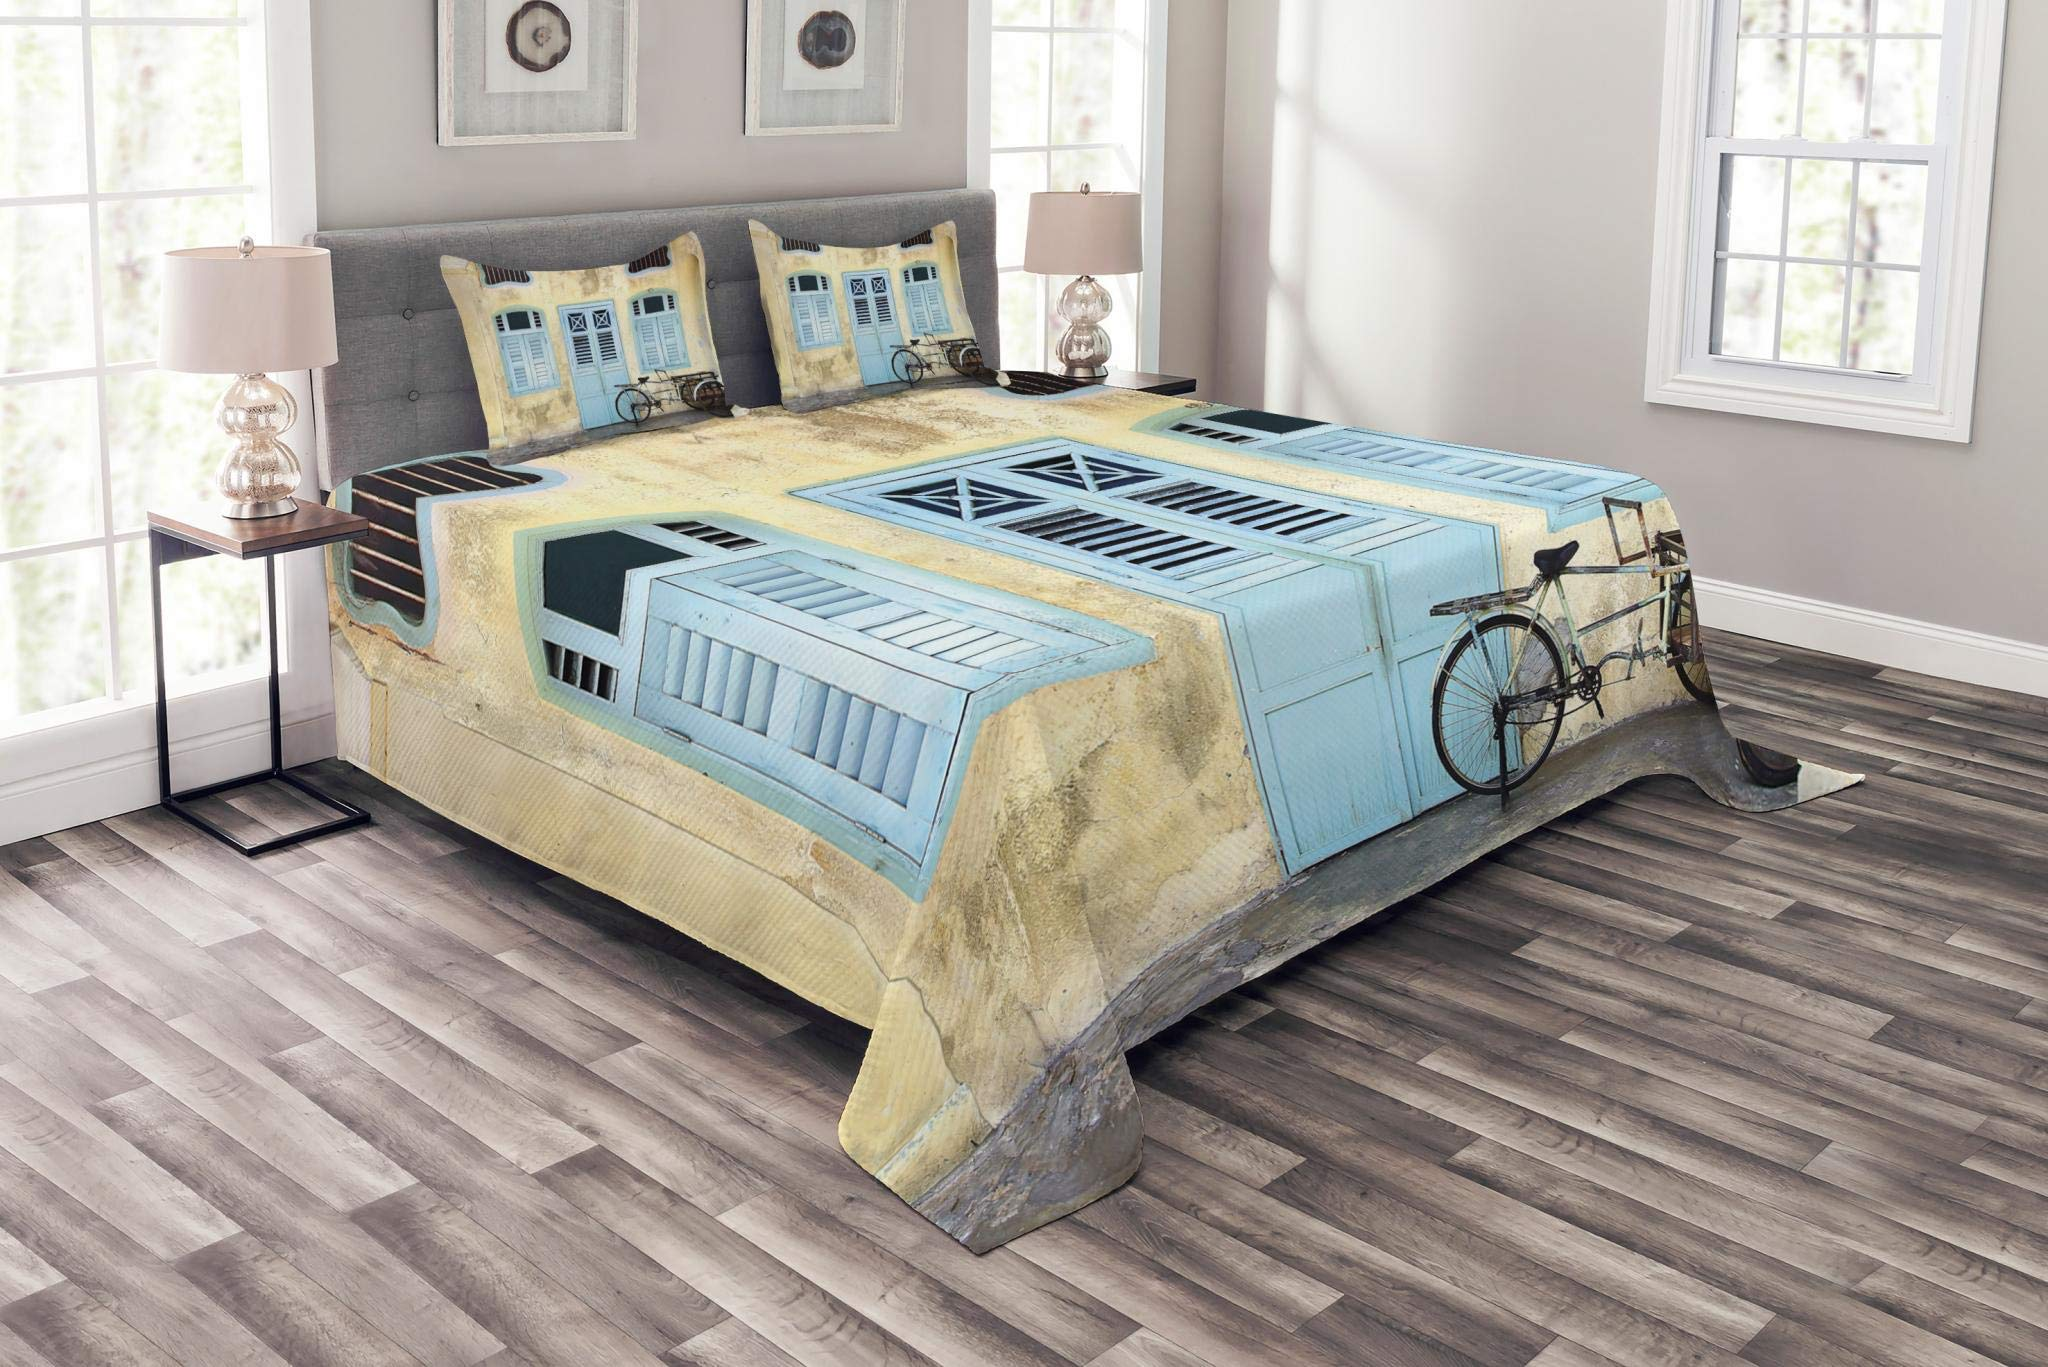 Lunarable Urban Bedspread Set King Size, Traditional House Facade with Colorful Door Windows Old Street Malaysia Photo, Decorative Quilted 3 Piece Coverlet Set with 2 Pillow Shams, Baby Blue Ivory